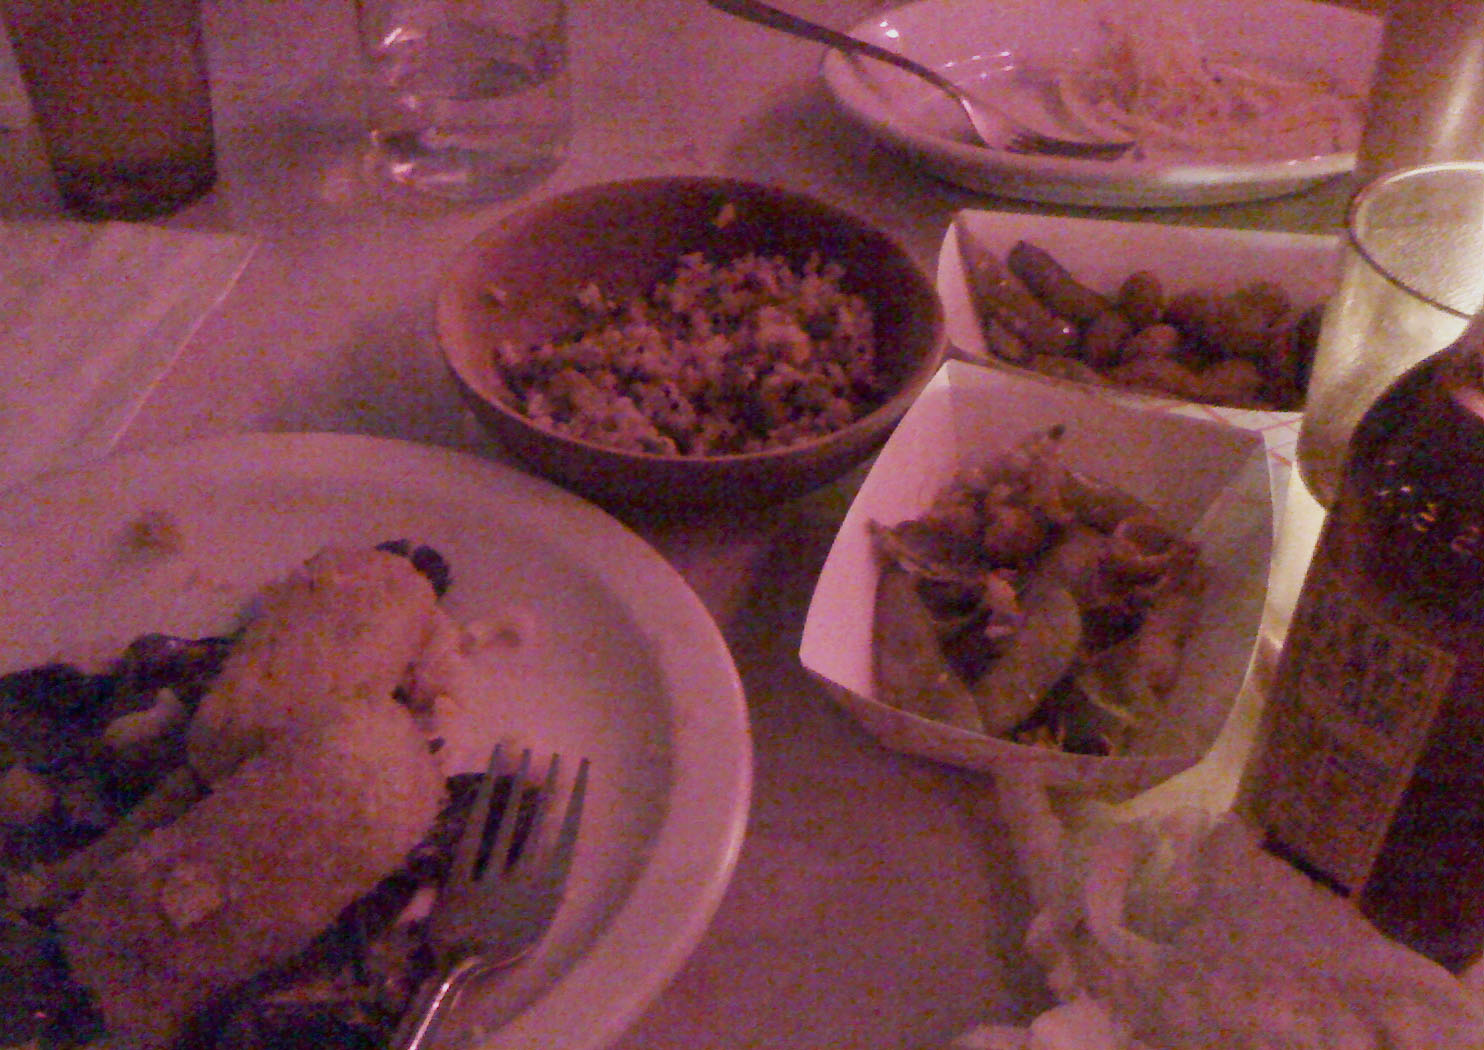 We demolished this fried mac & cheese, Japanese dirty rice, & Peanuts soaked in RC cola